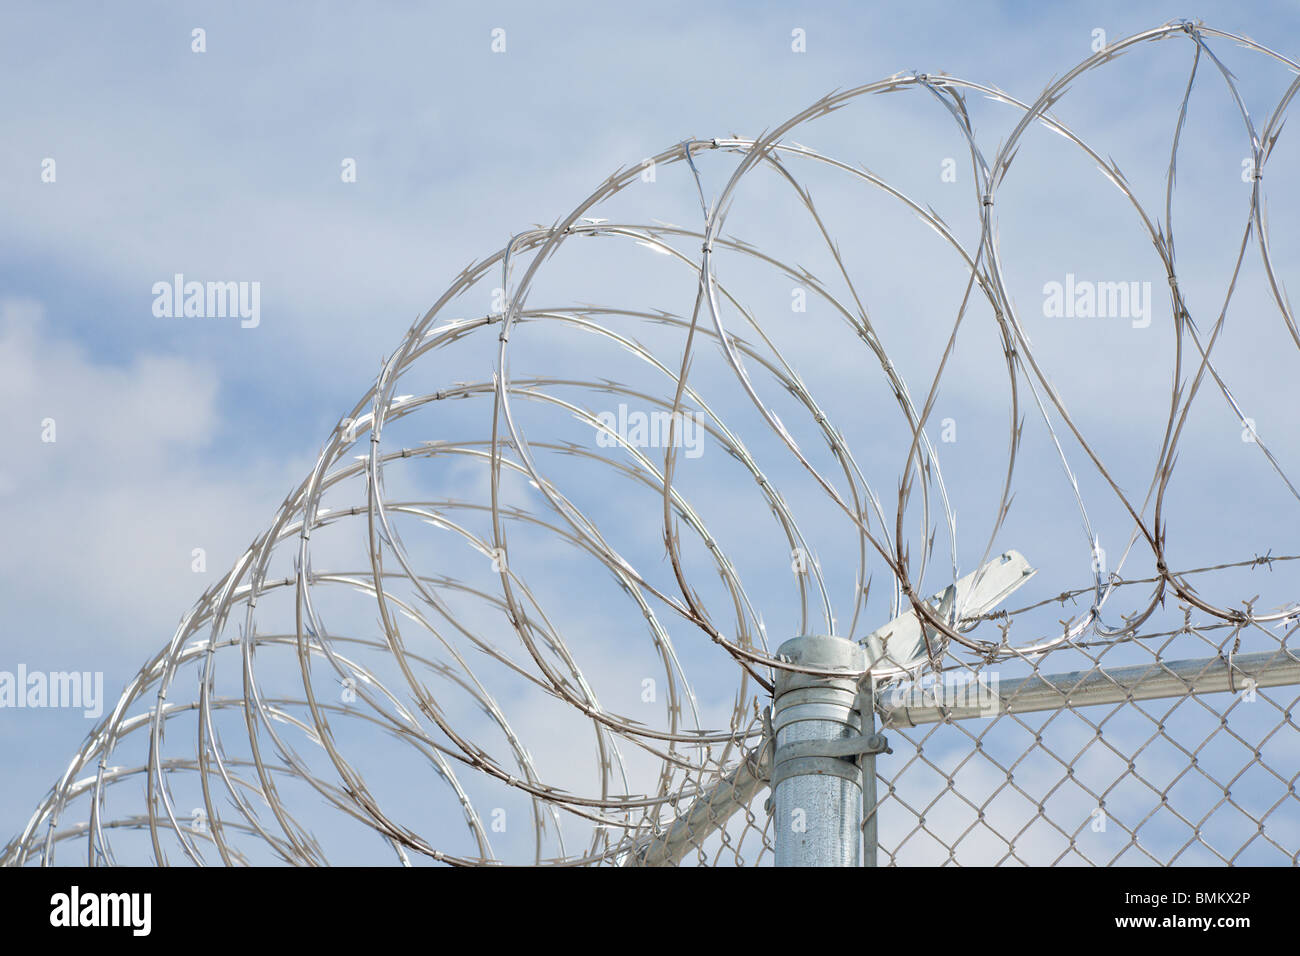 Florida - Feb 2009 - Stainless steel razor wire spirals over chain ...